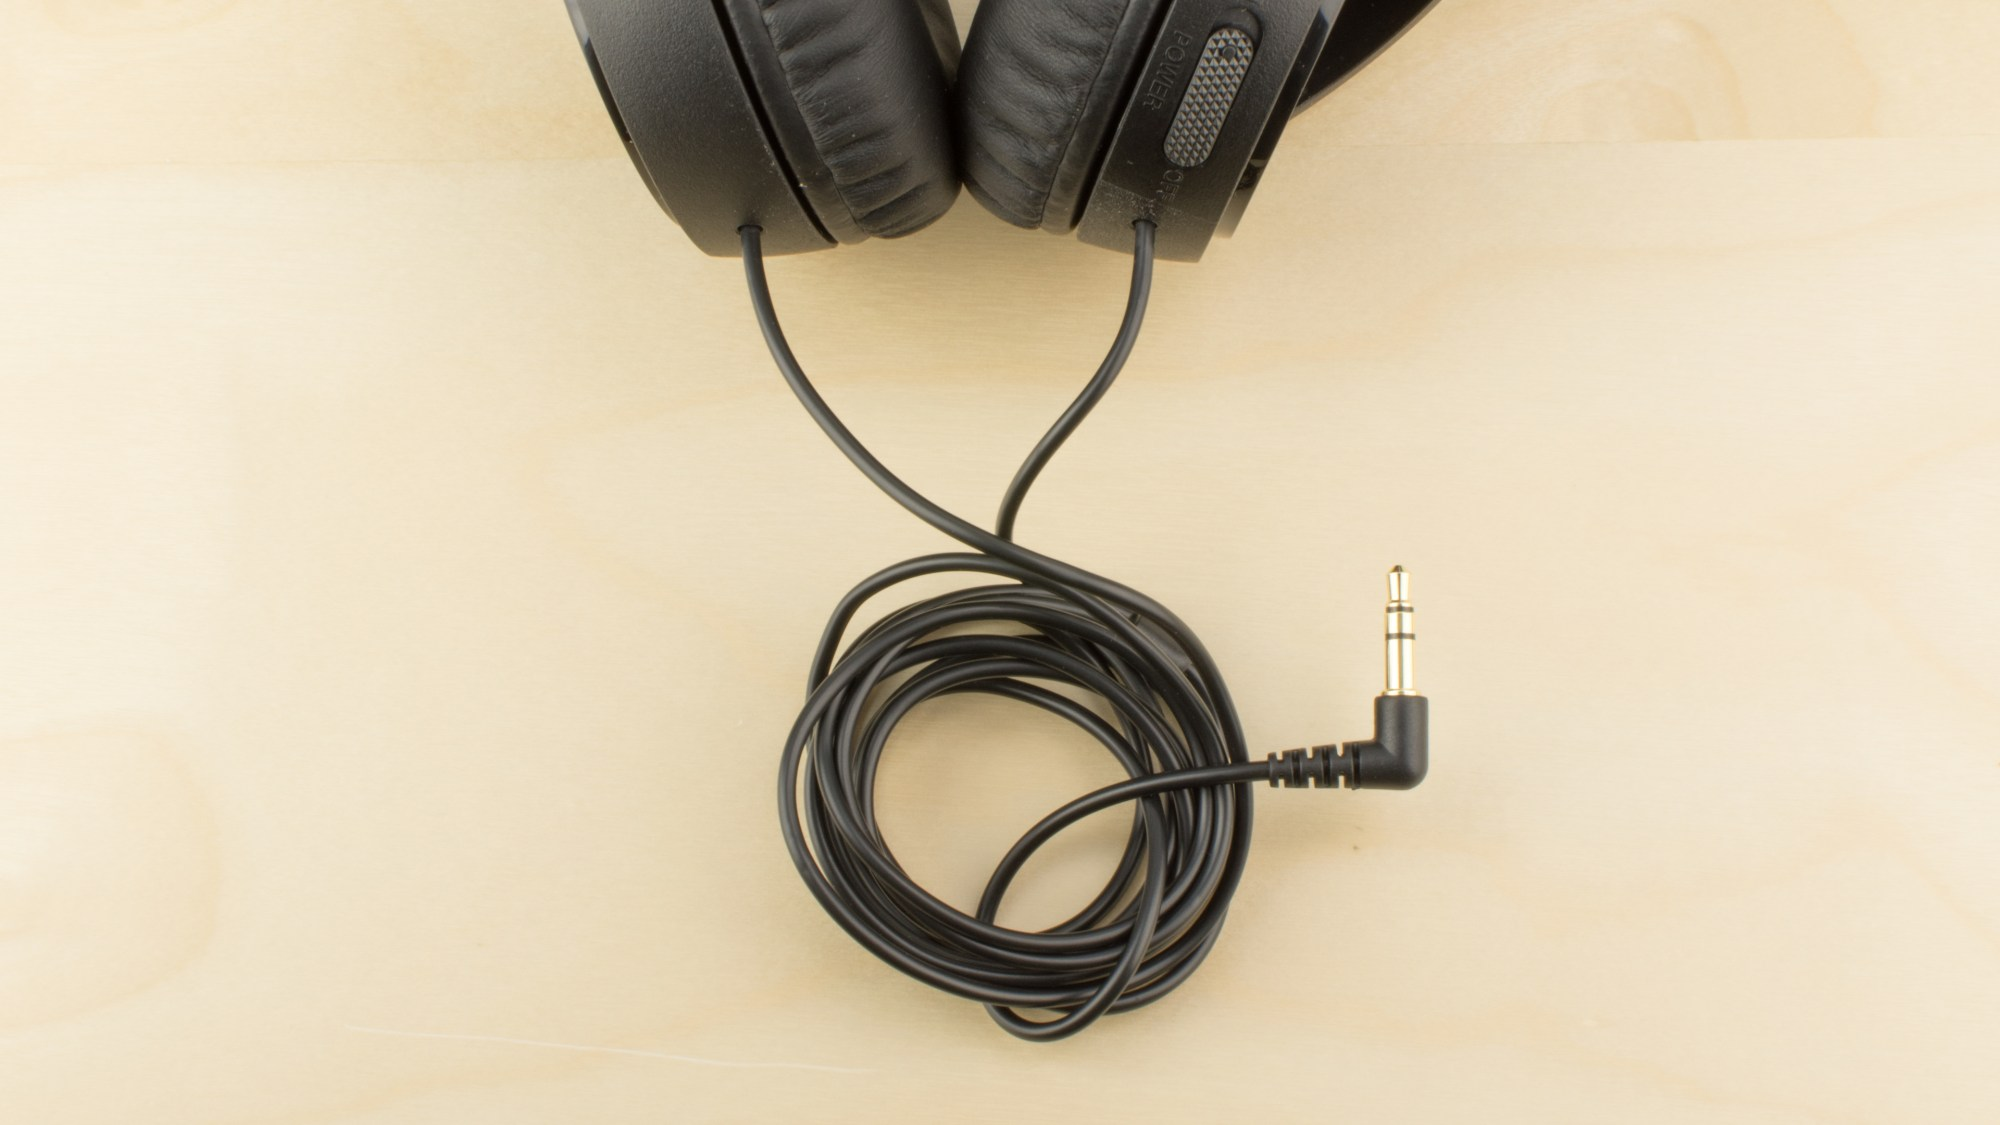 hight resolution of sony mdr zx110nc cable picture